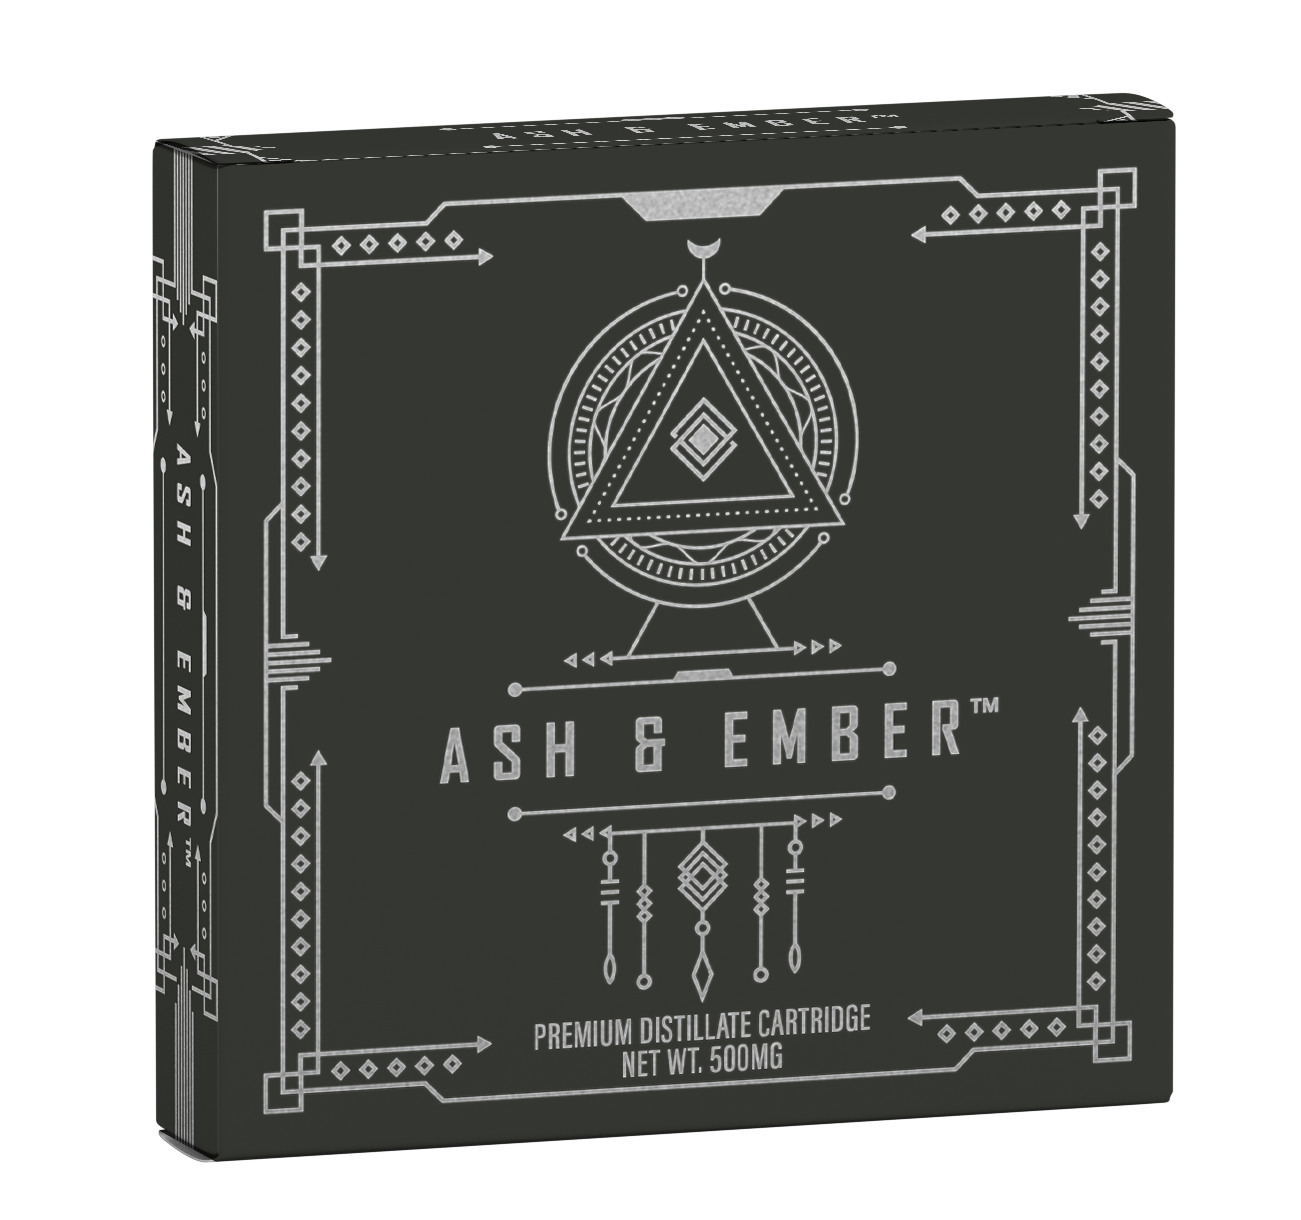 - An ideal stimulant to uplift and liberate the senses, Ash & Ember vapes are made of carefully selected strains for their unique creative and euphoric attributes. Special ceramic coils deliver smooth hits without burning, taking your mind, body and soul on a journey of psychedelic revelations.